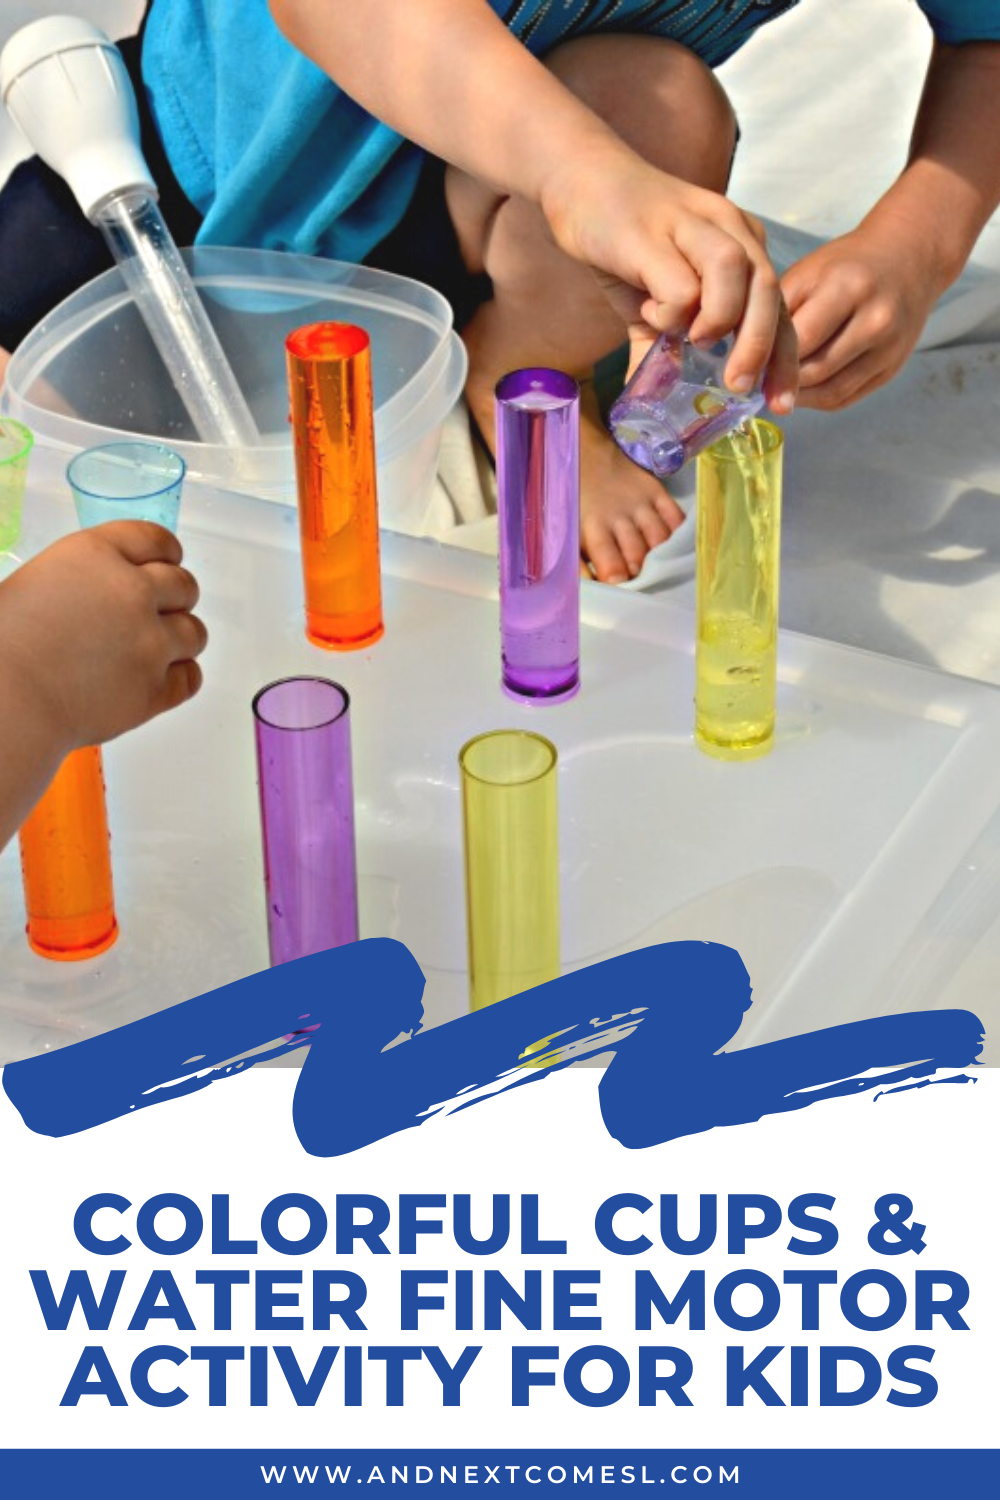 Colorful cups & water fine motor activity for toddlers and preschoolers to work on fine motor skills, scooping and pouring, and so much more!